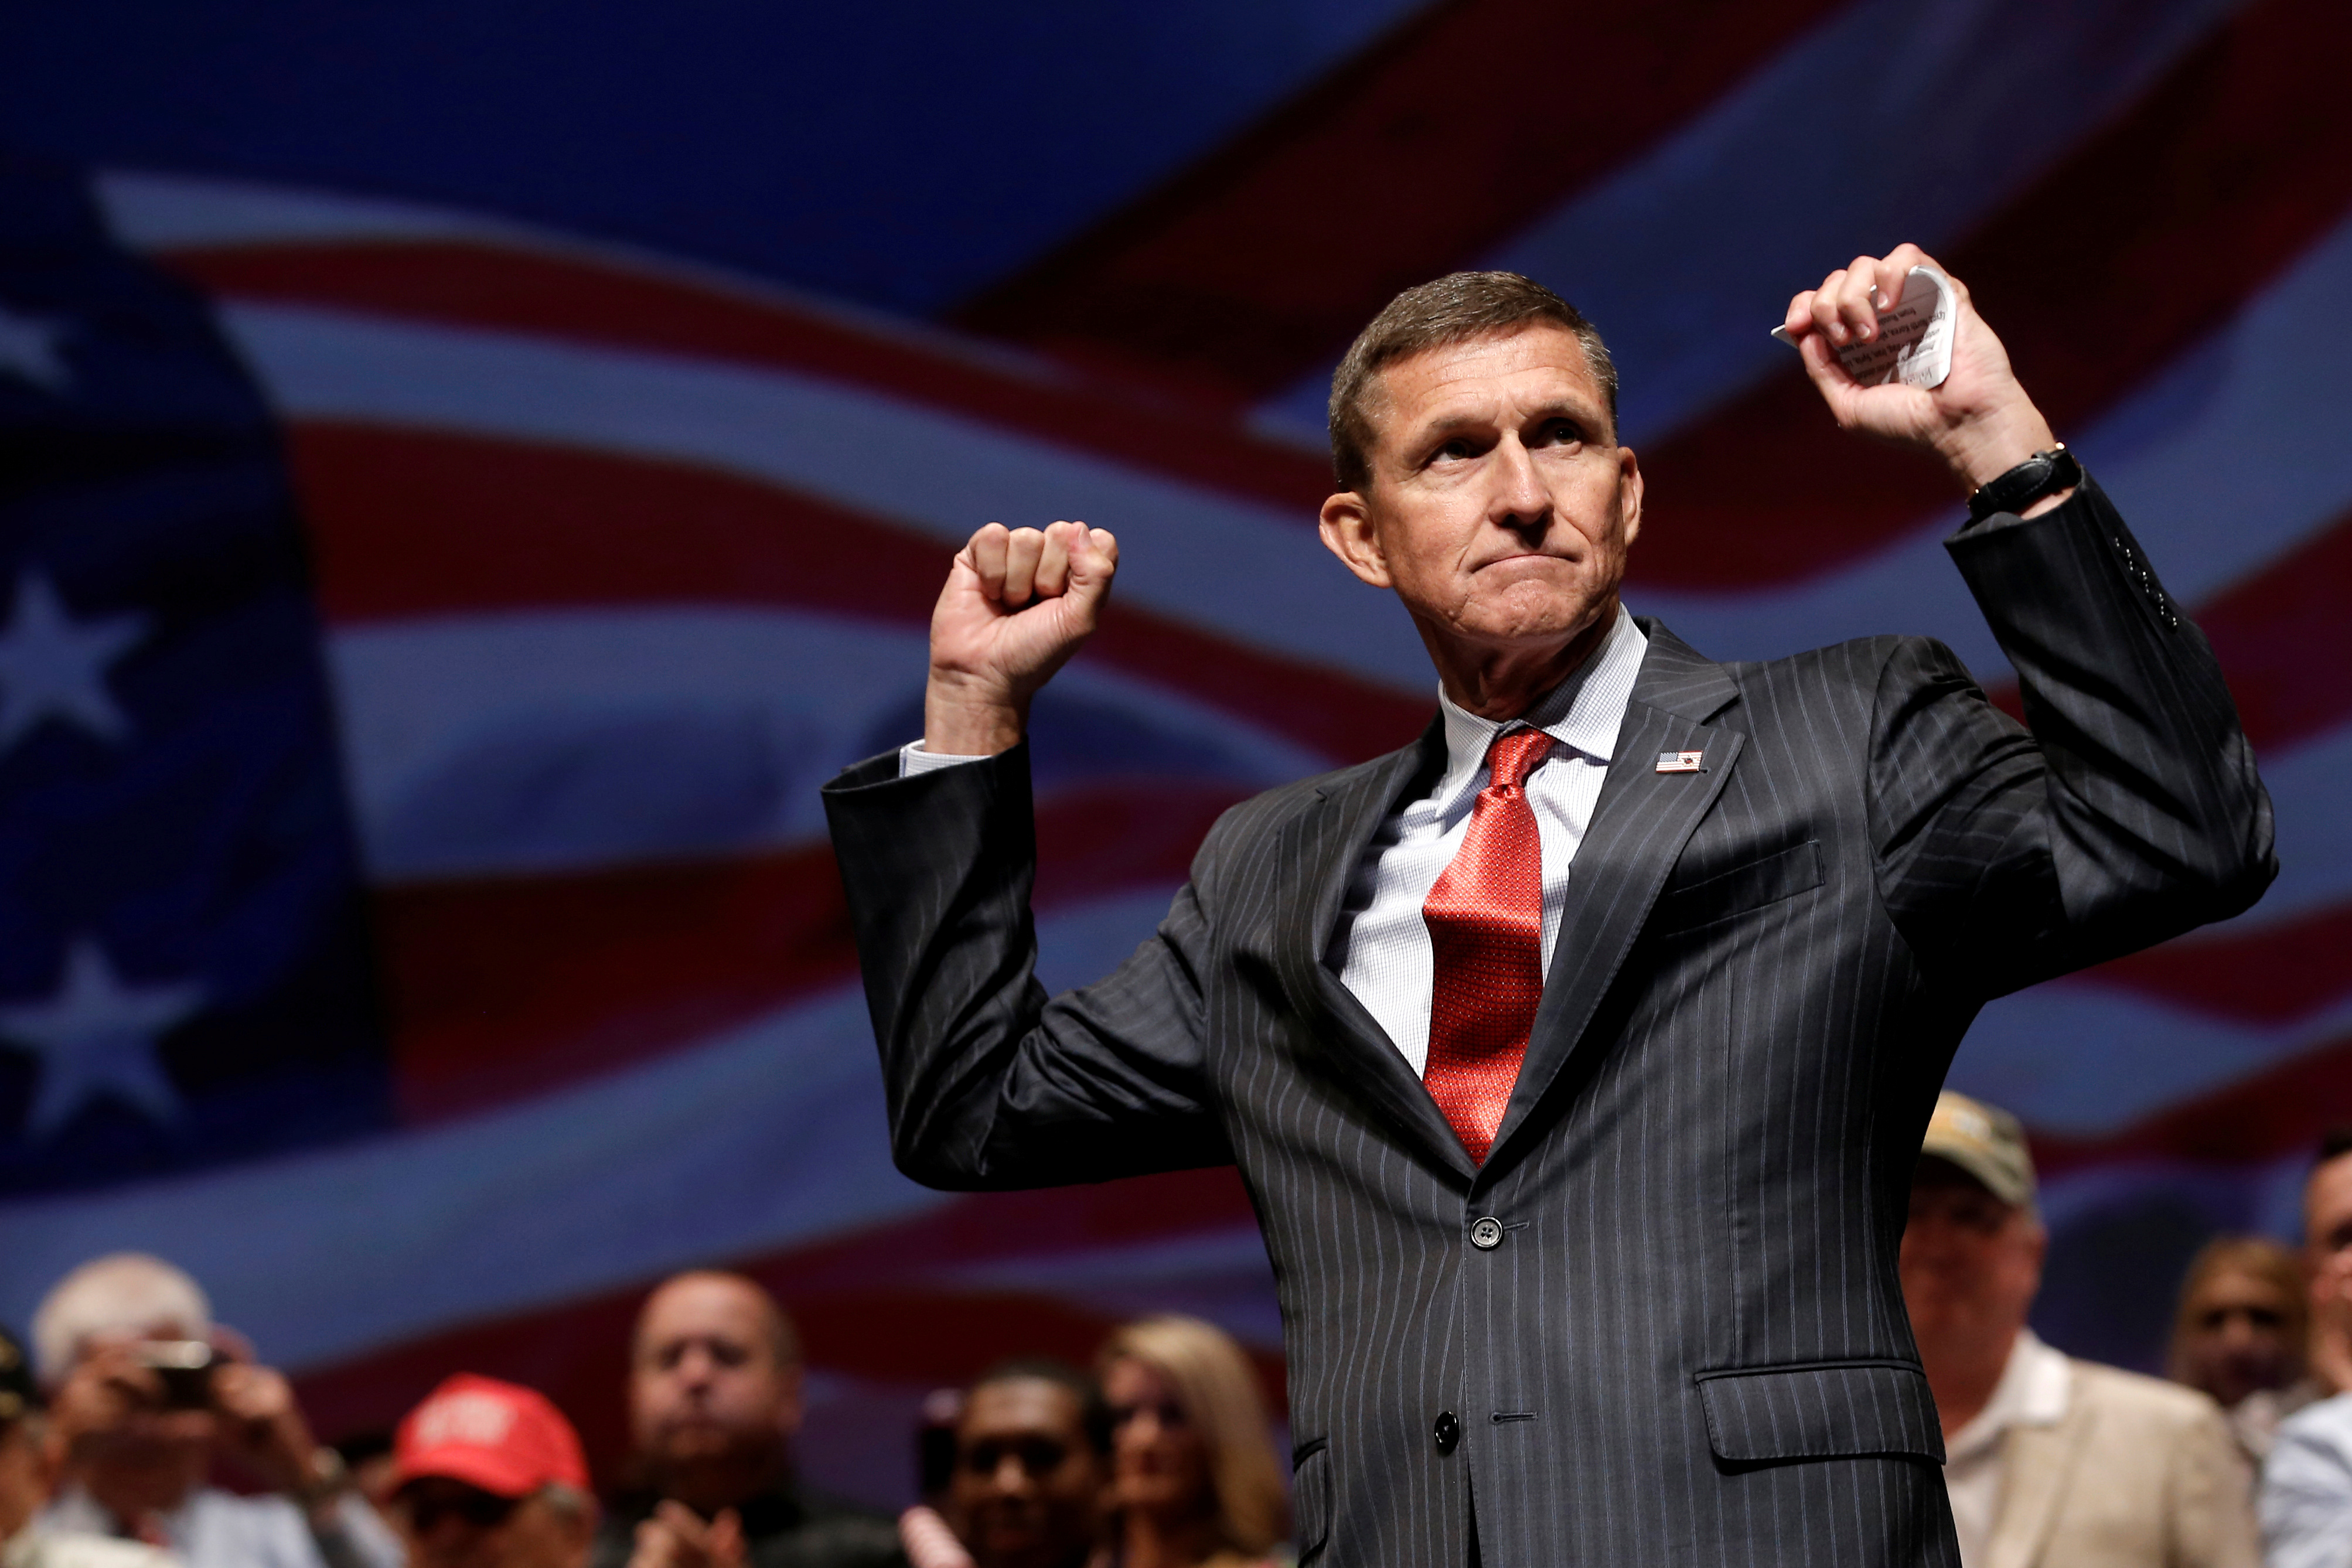 Flynn reacts at a campaign event for Republican presidential nominee Donald Trump in Virginia Beach